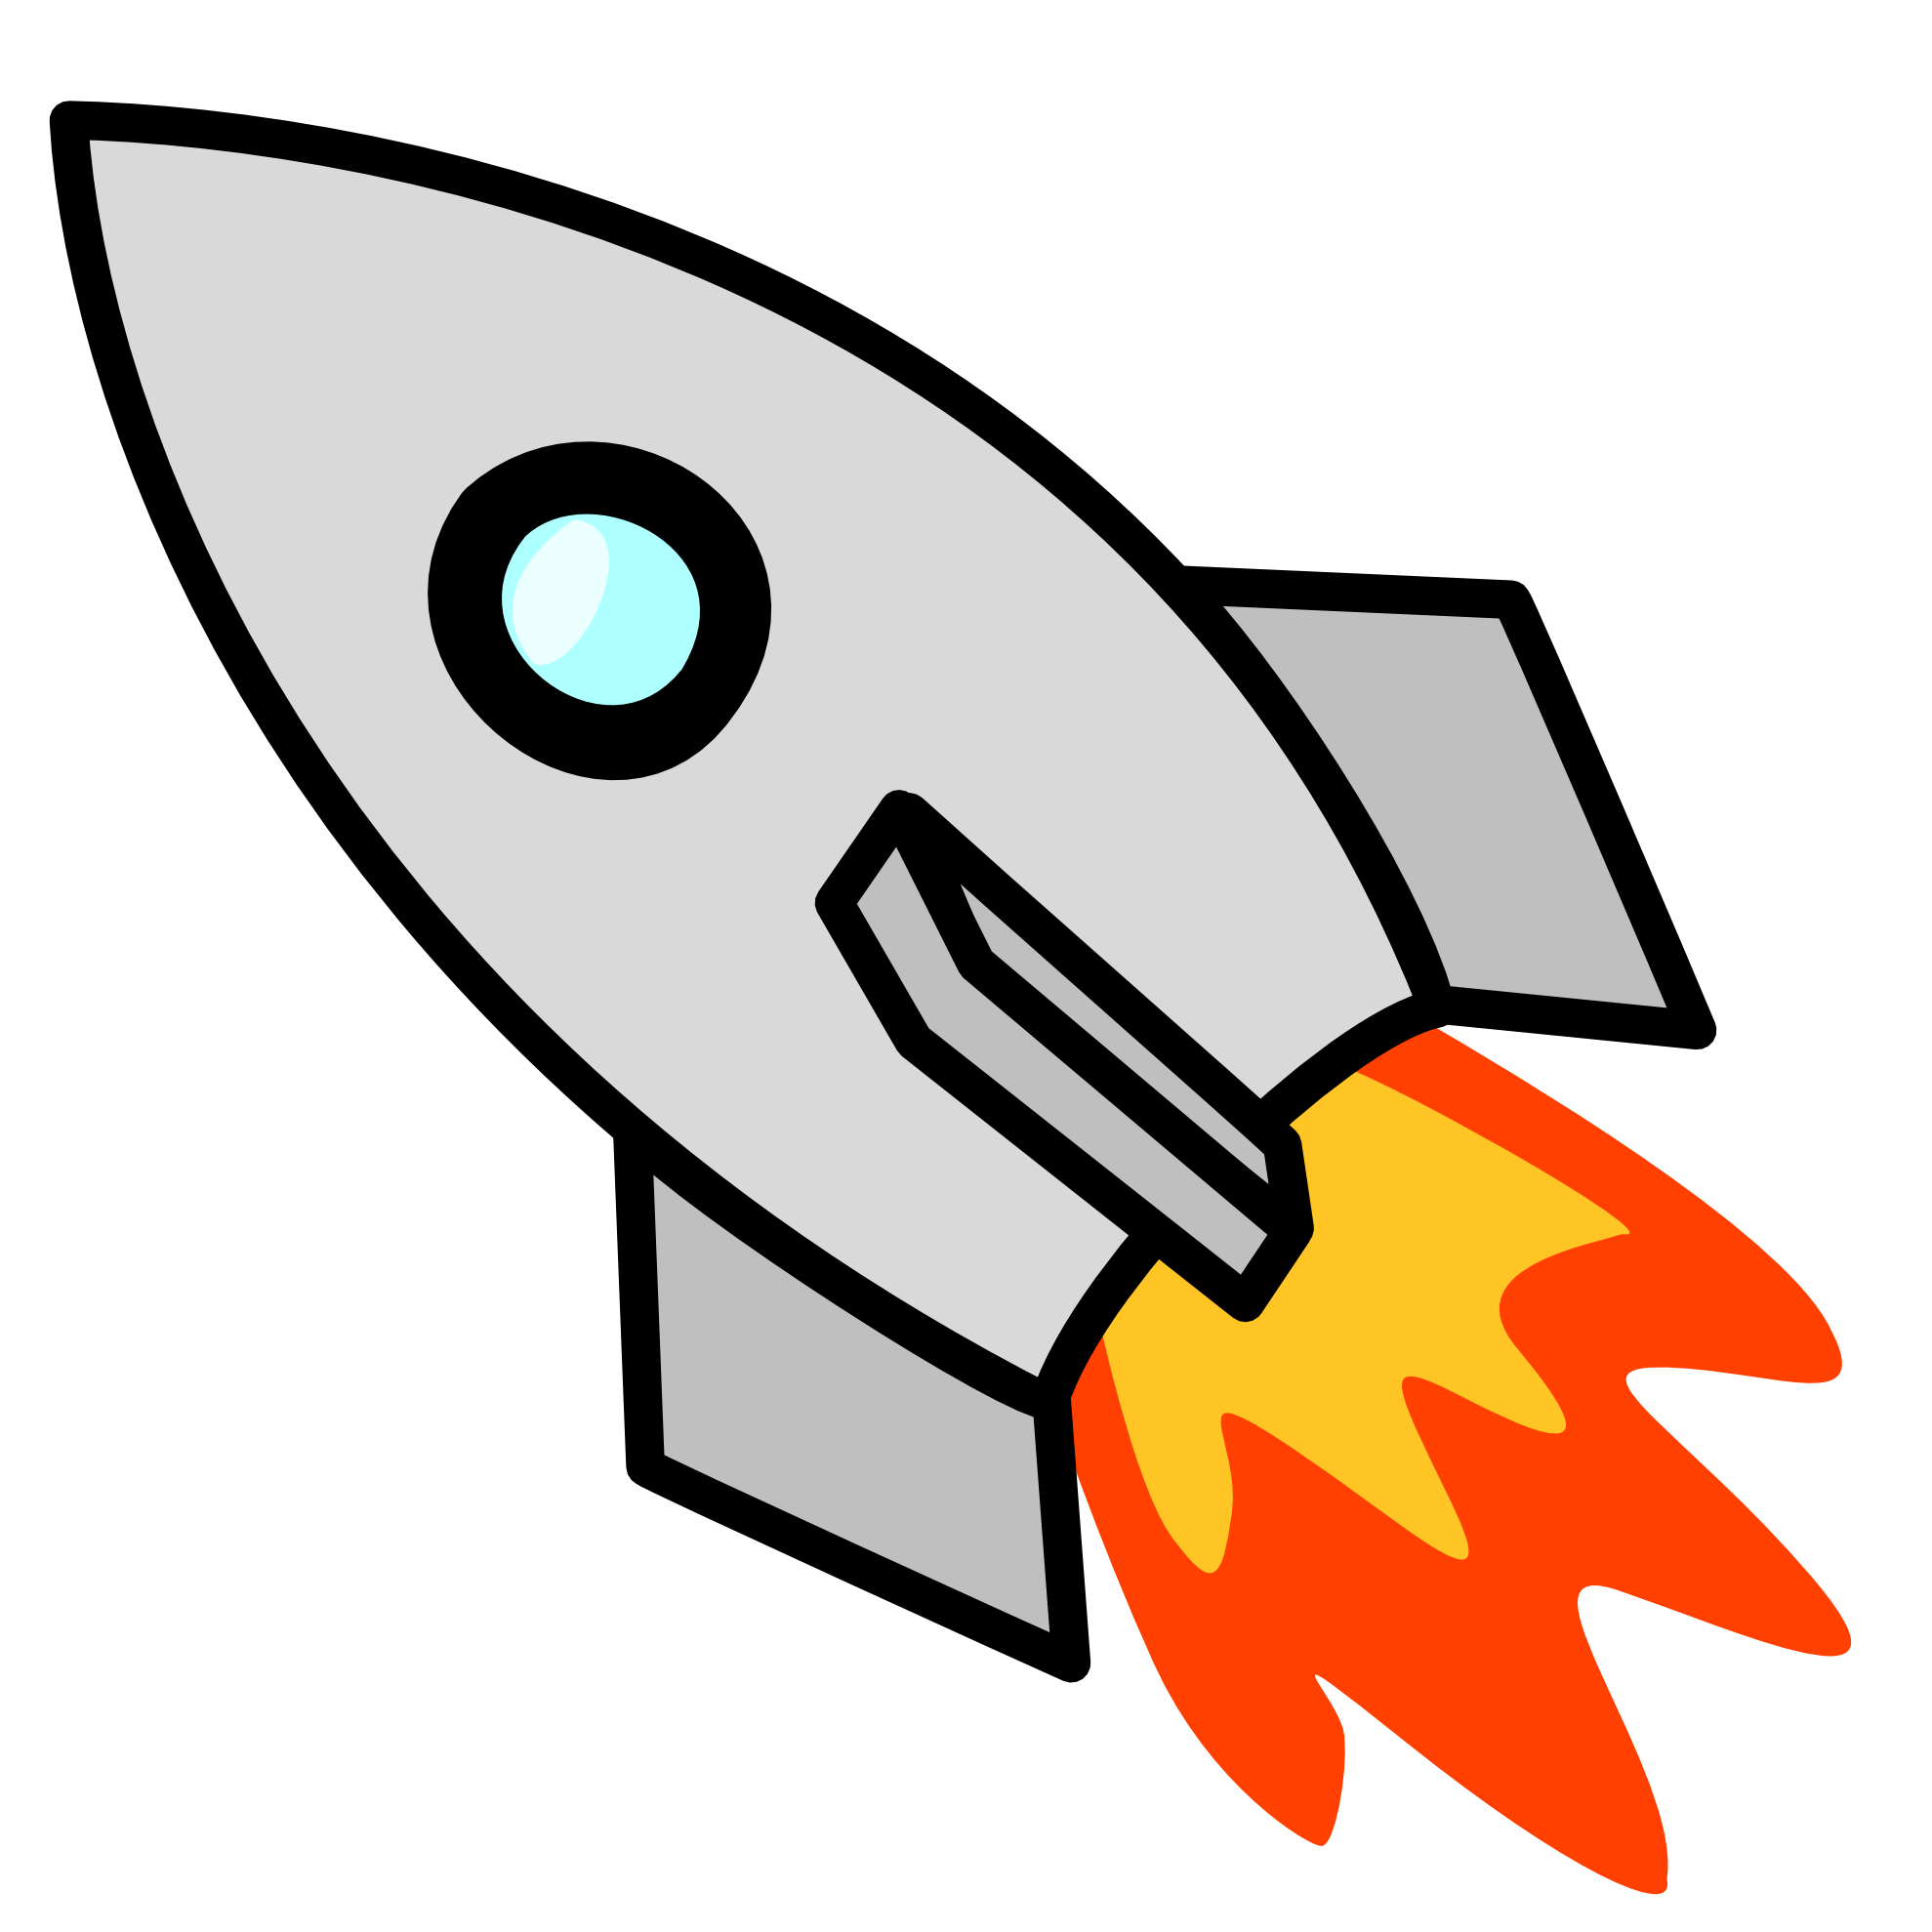 science clipart space